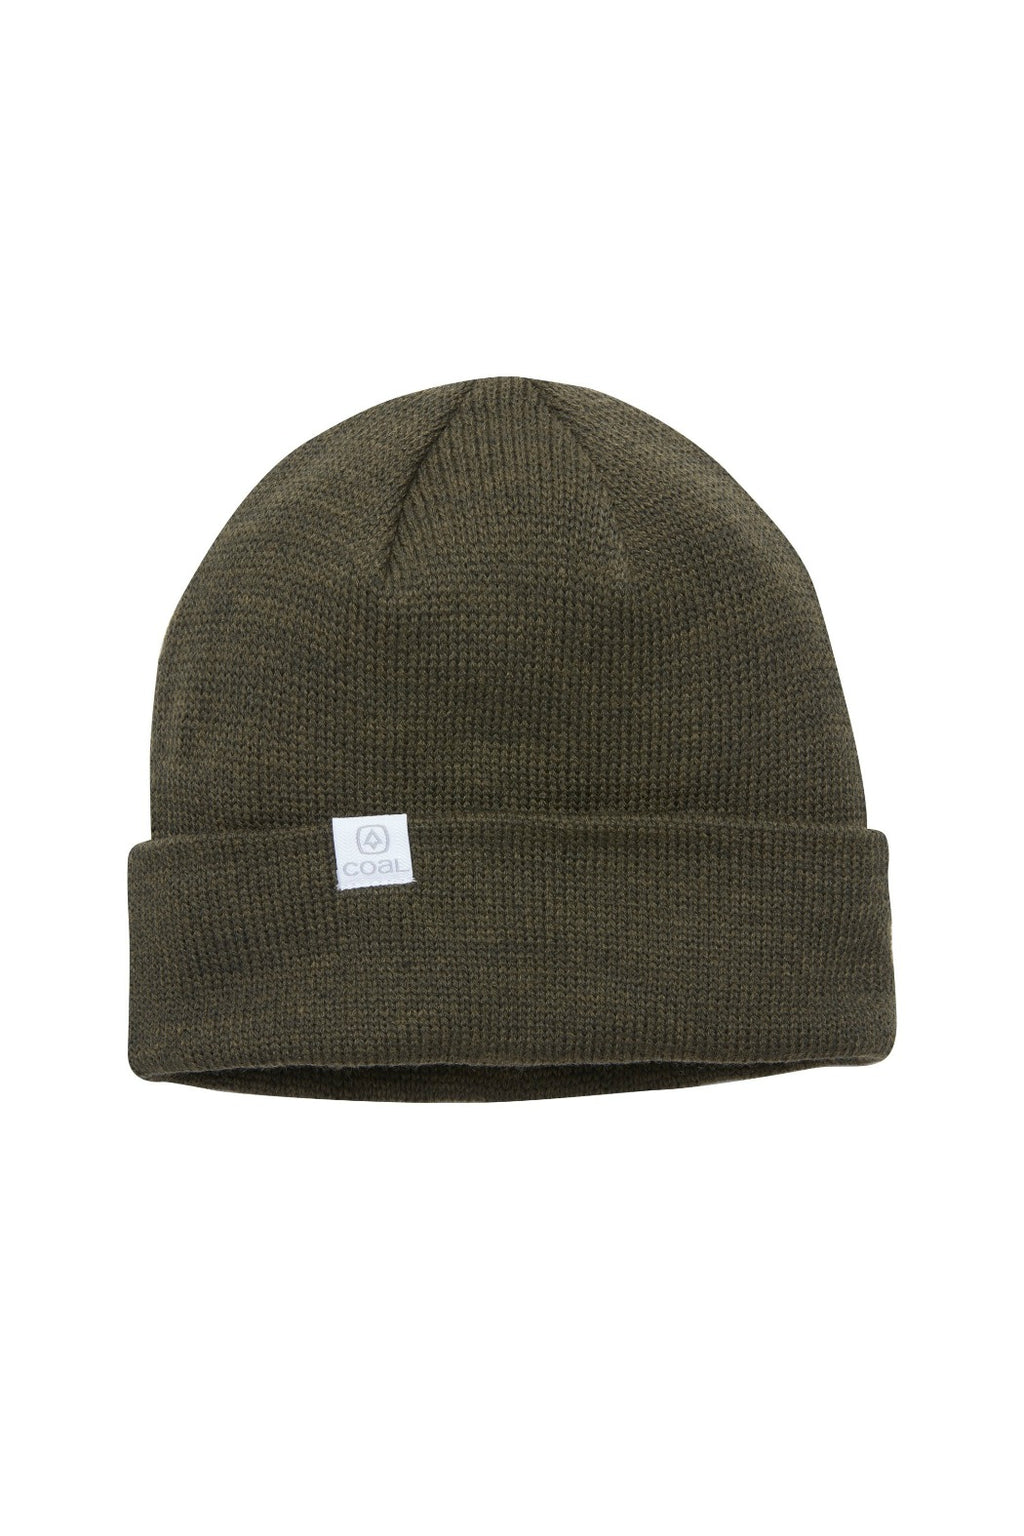 Coal The FLT Beanie - Olive